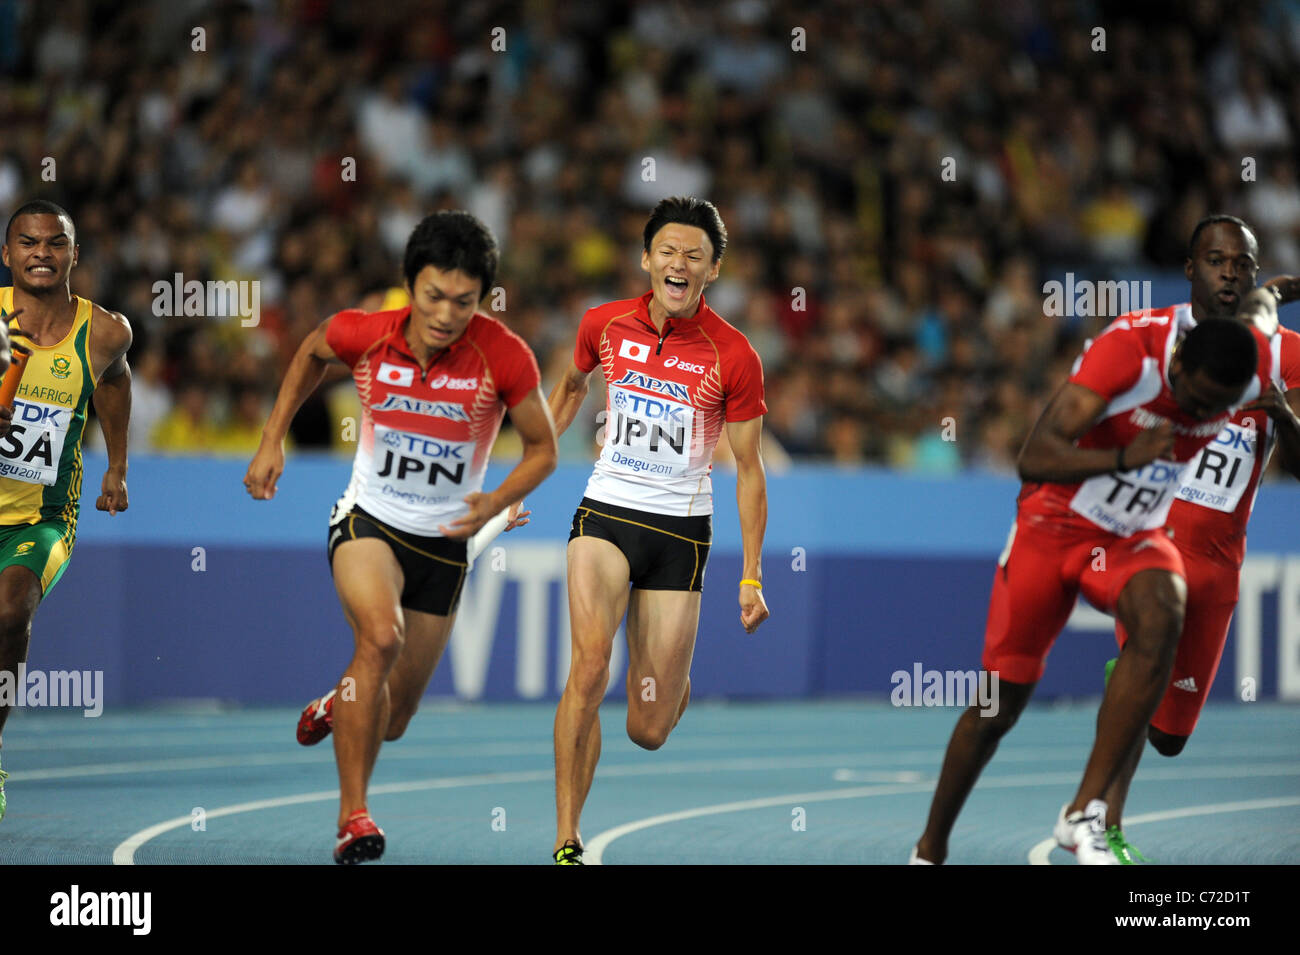 Hitoshi Saito and Shinji Takahira (JPN) perform for the men's 4x100m relay heats at the 13th IAAF World Championships. - Stock Image